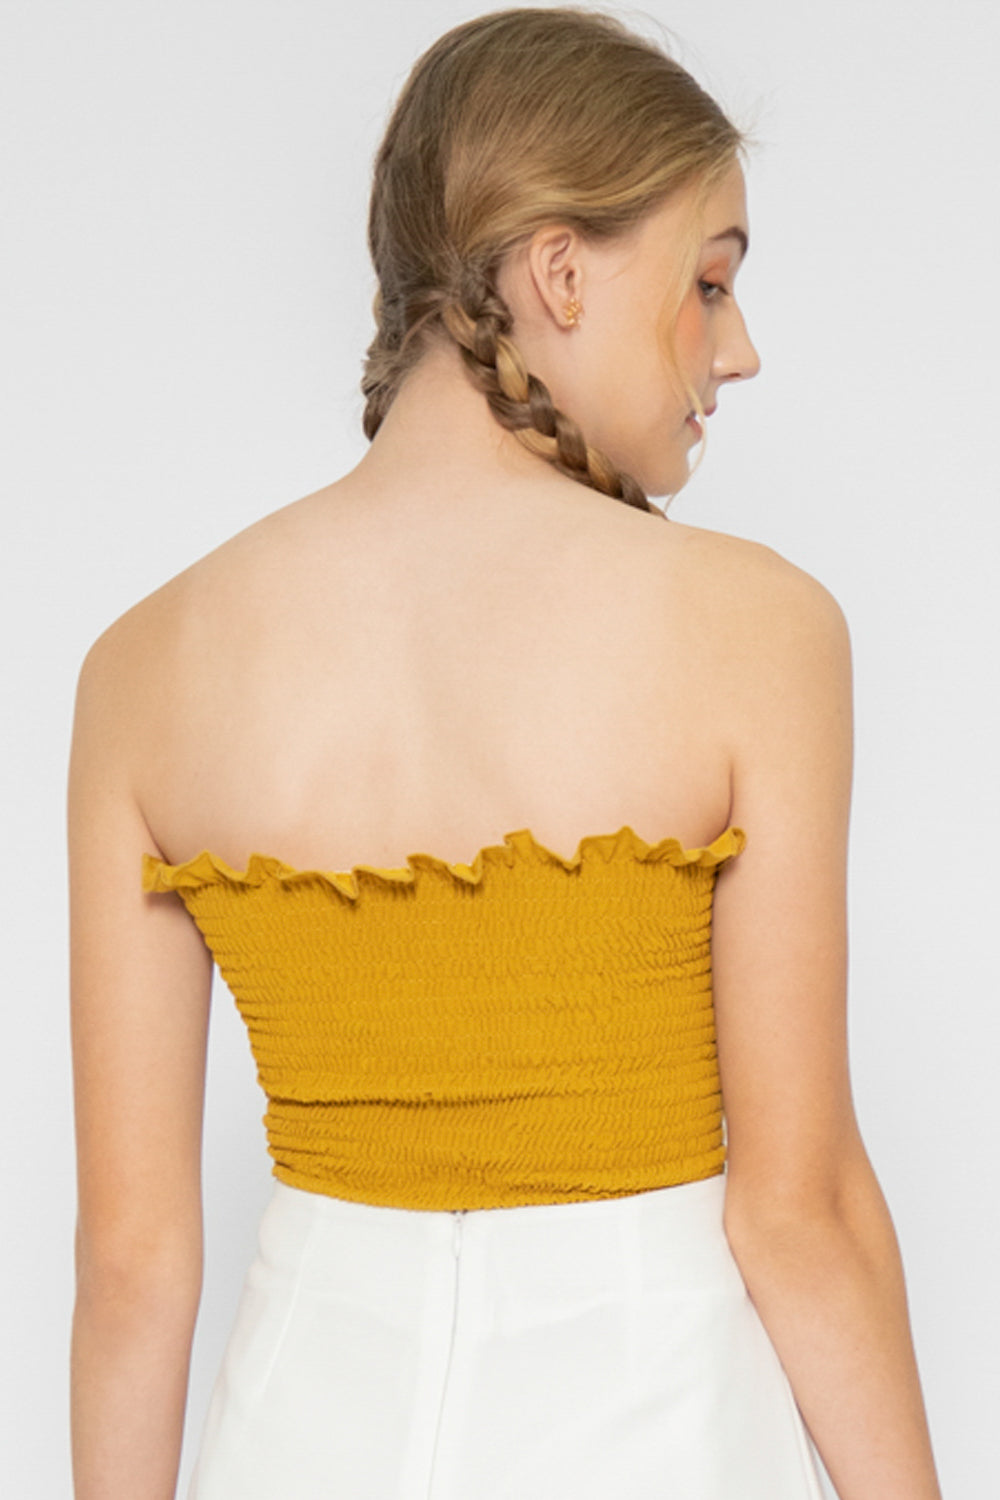 Kadey Ruffle Tube Top - Three One Duo